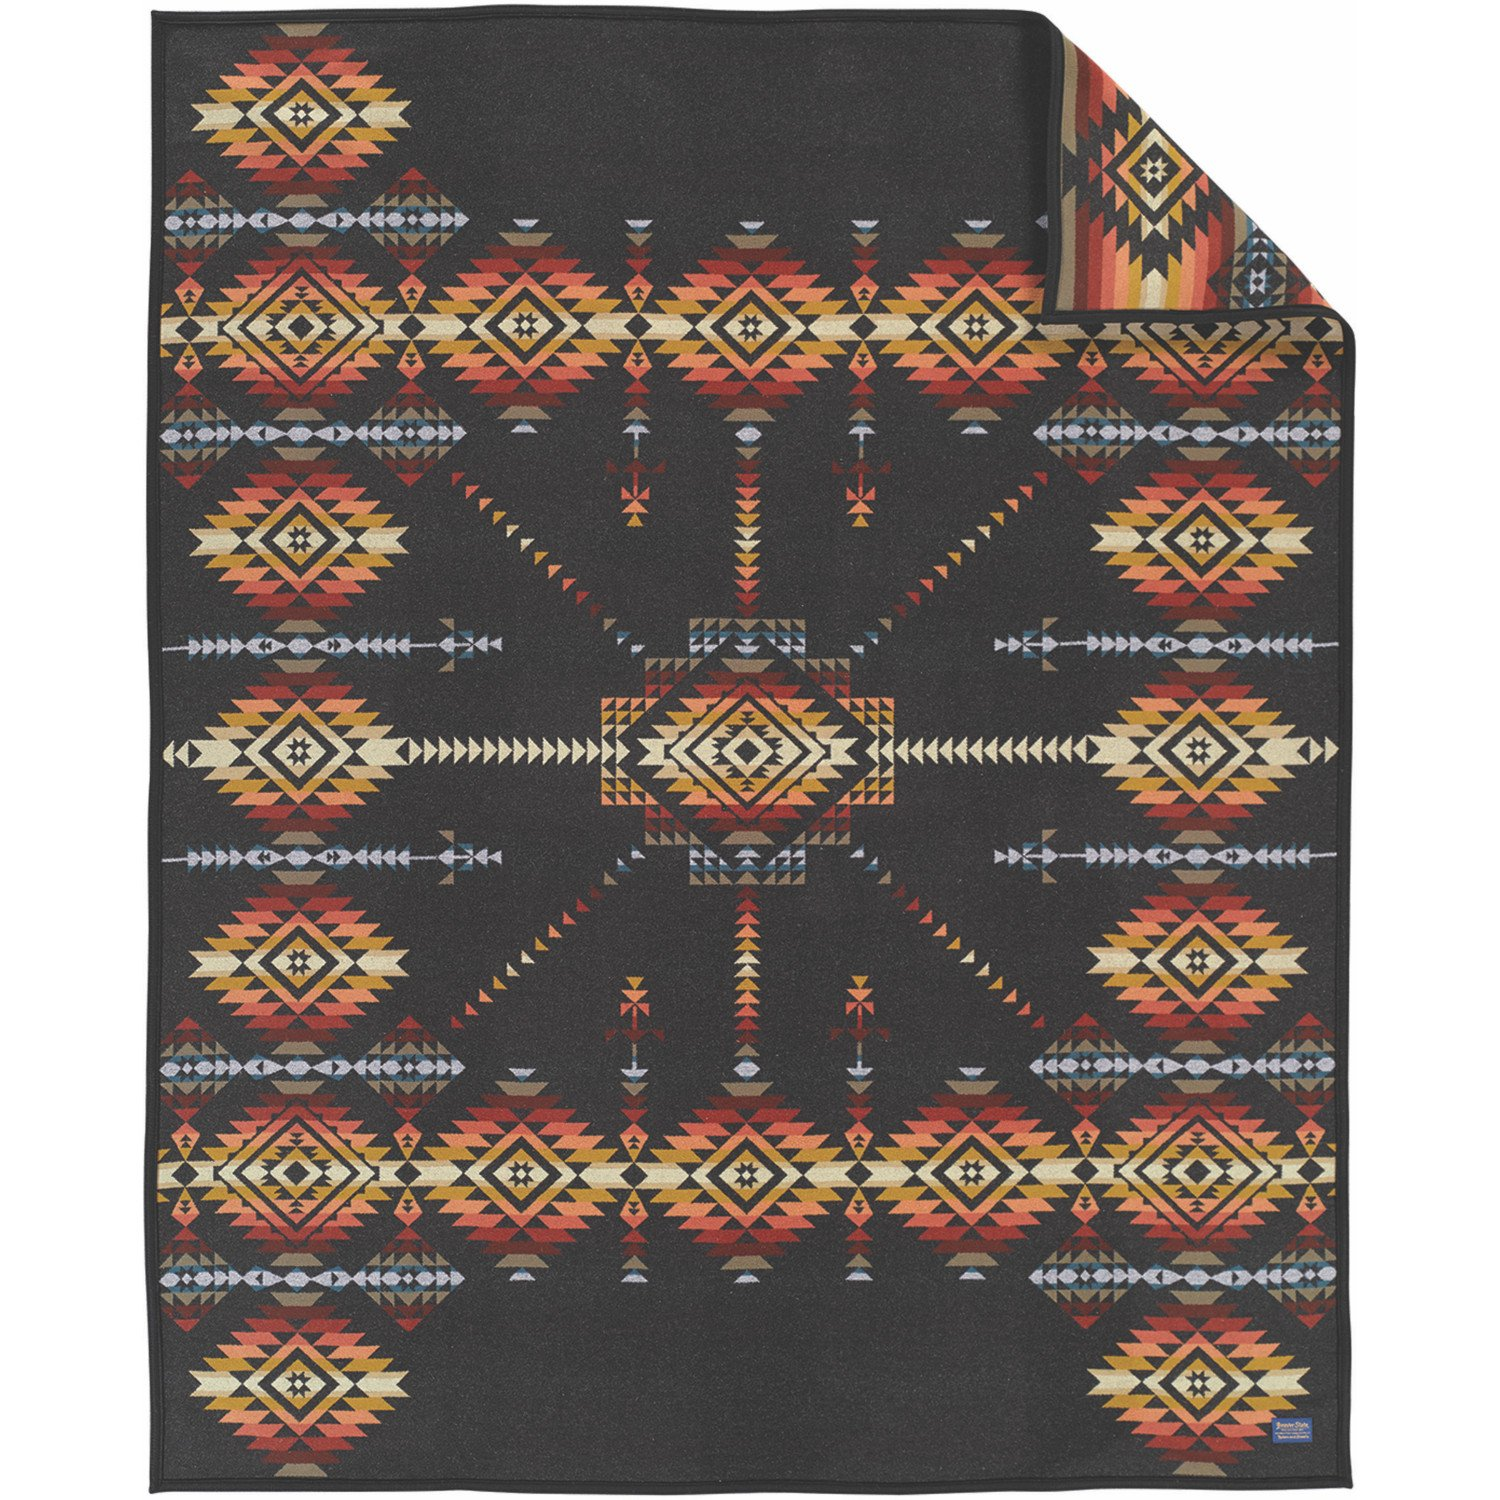 Pendleton Heritage Collection Robe Blanket One Size Dark Charcoal by Pendleton (Image #1)